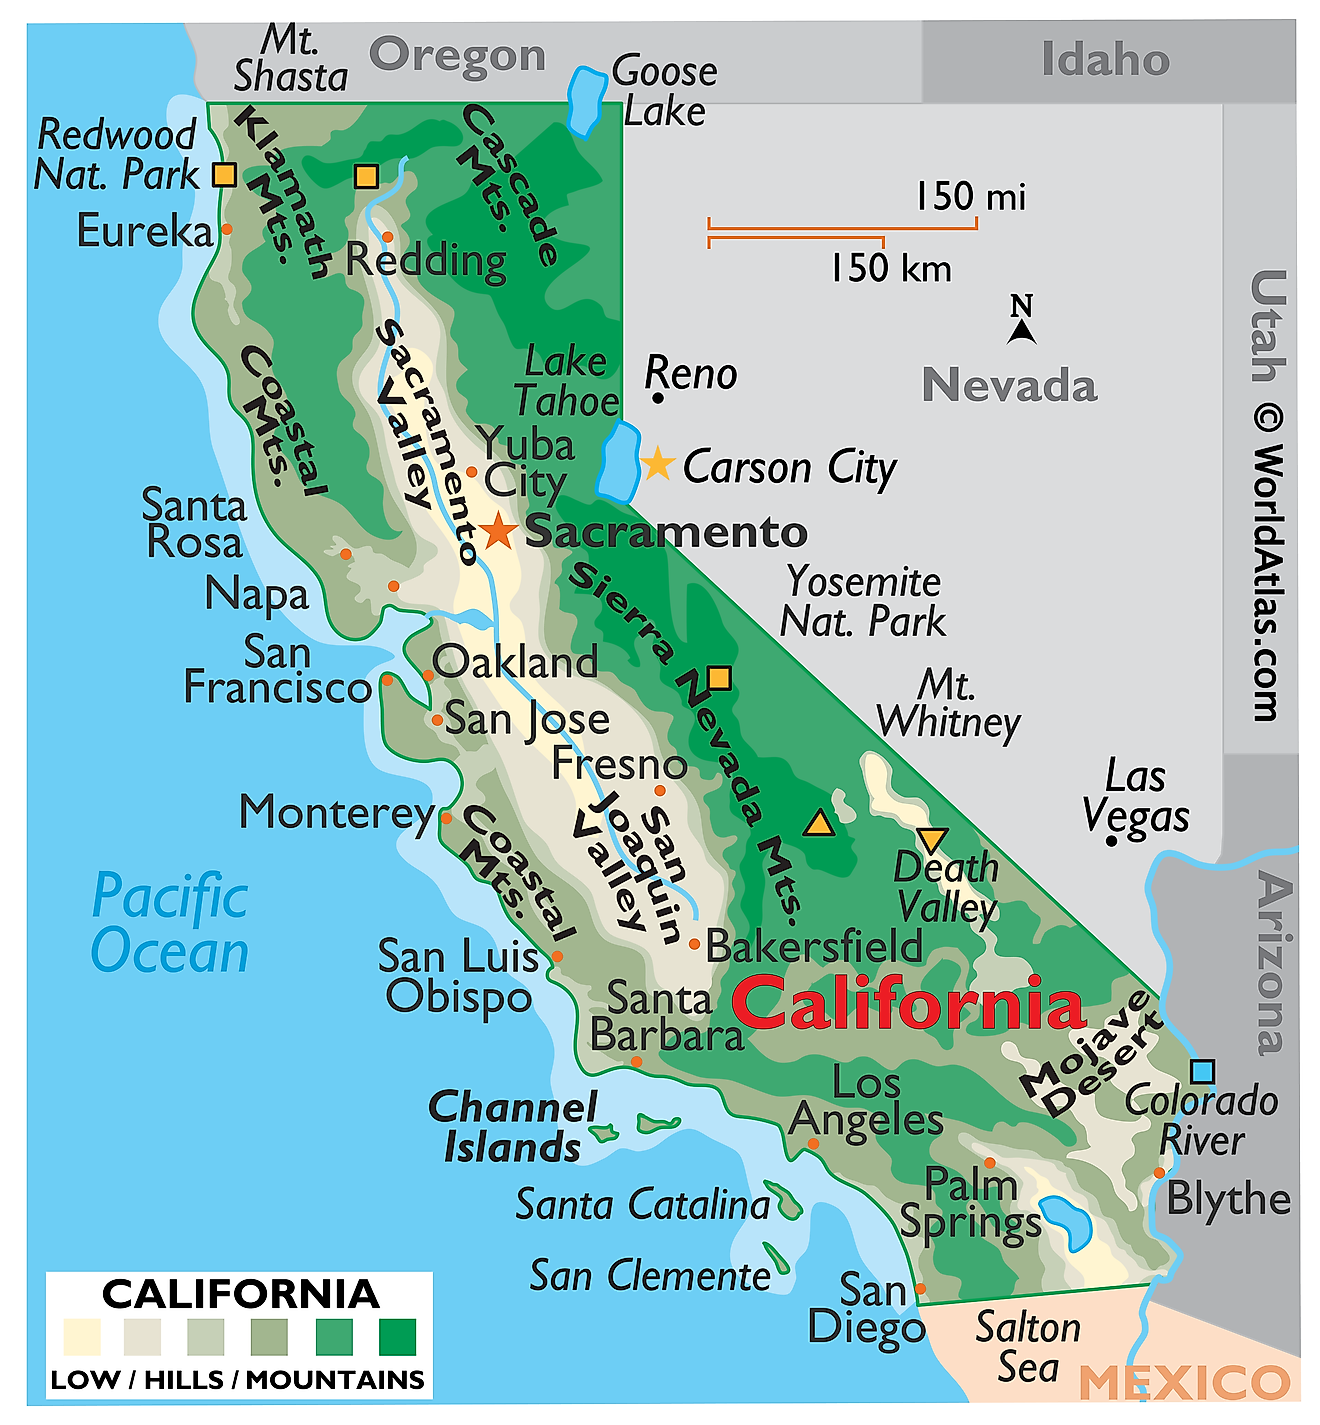 Physical Map of California. It shows the physical features of California including its mountain ranges, rivers and major lakes.